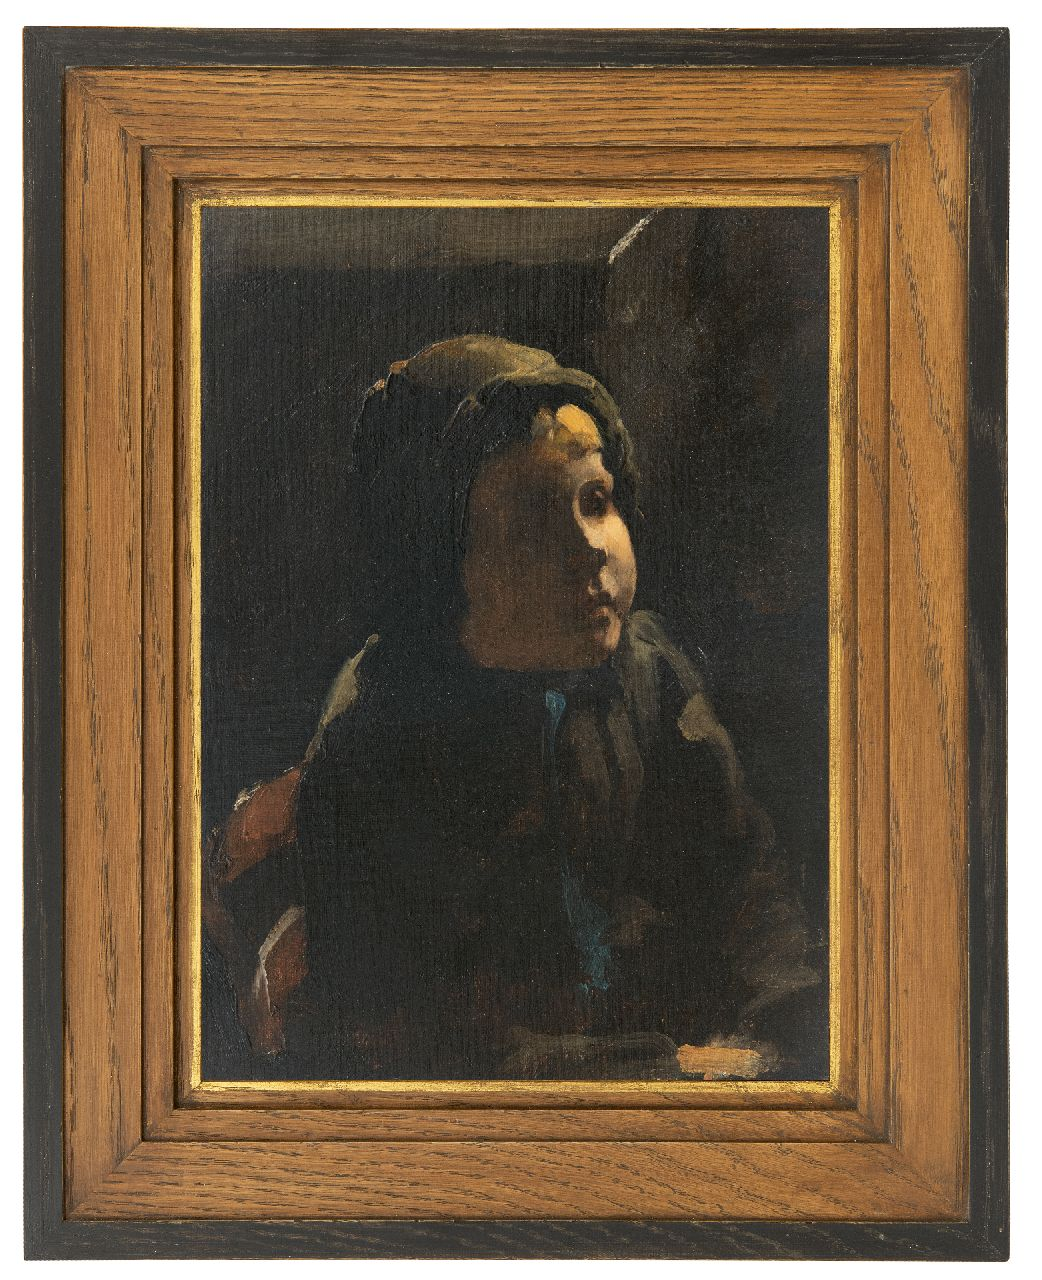 Witsen W.A.  | 'Willem' Arnold Witsen | Paintings offered for sale | A peasant girl, oil on painter's board 35.5 x 25.3 cm, pained ca. 1885